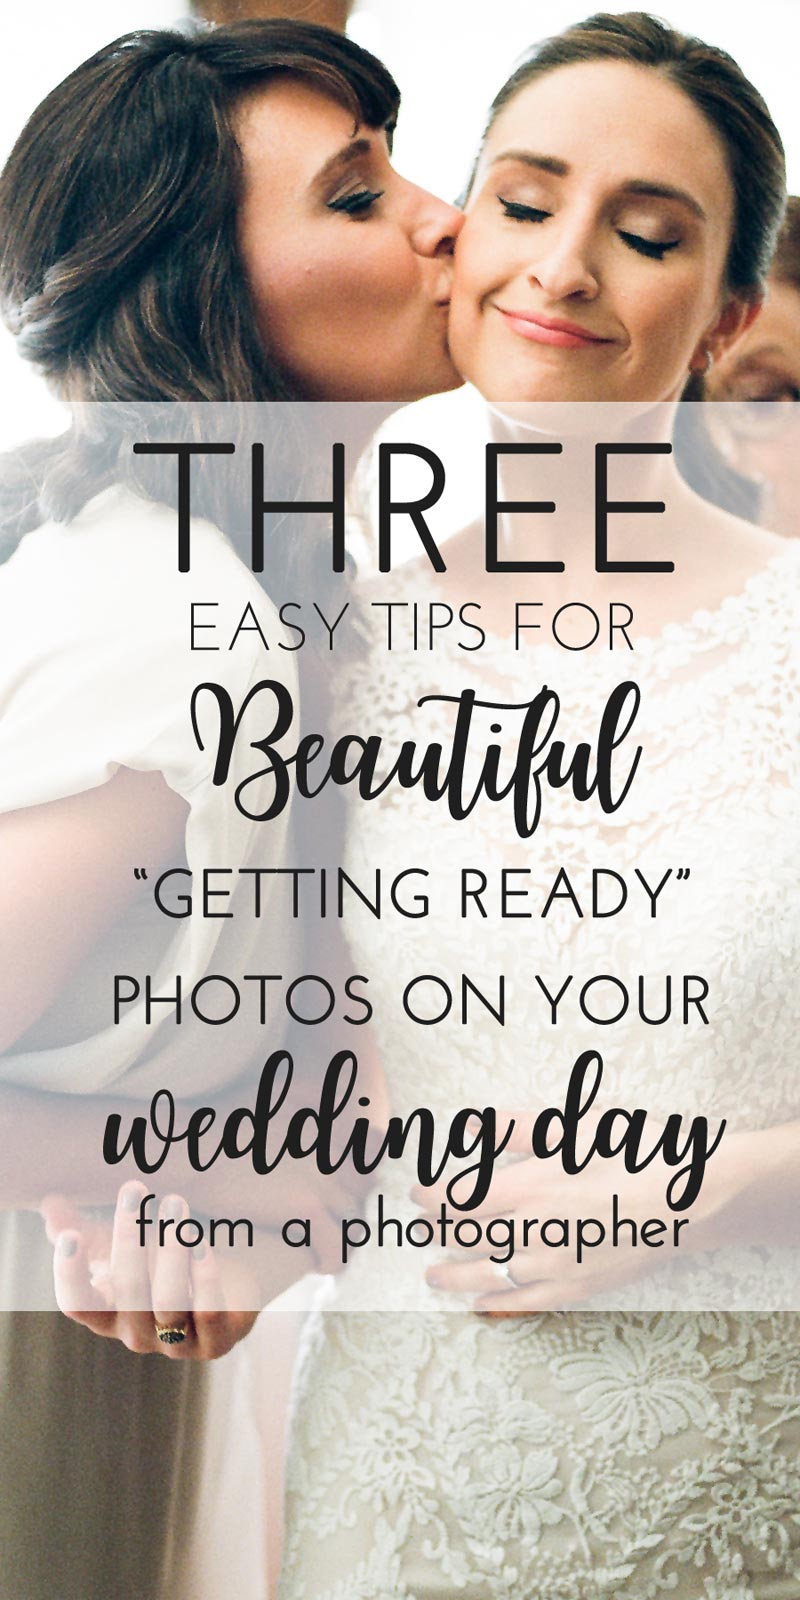 three easy tips for getting ready photos